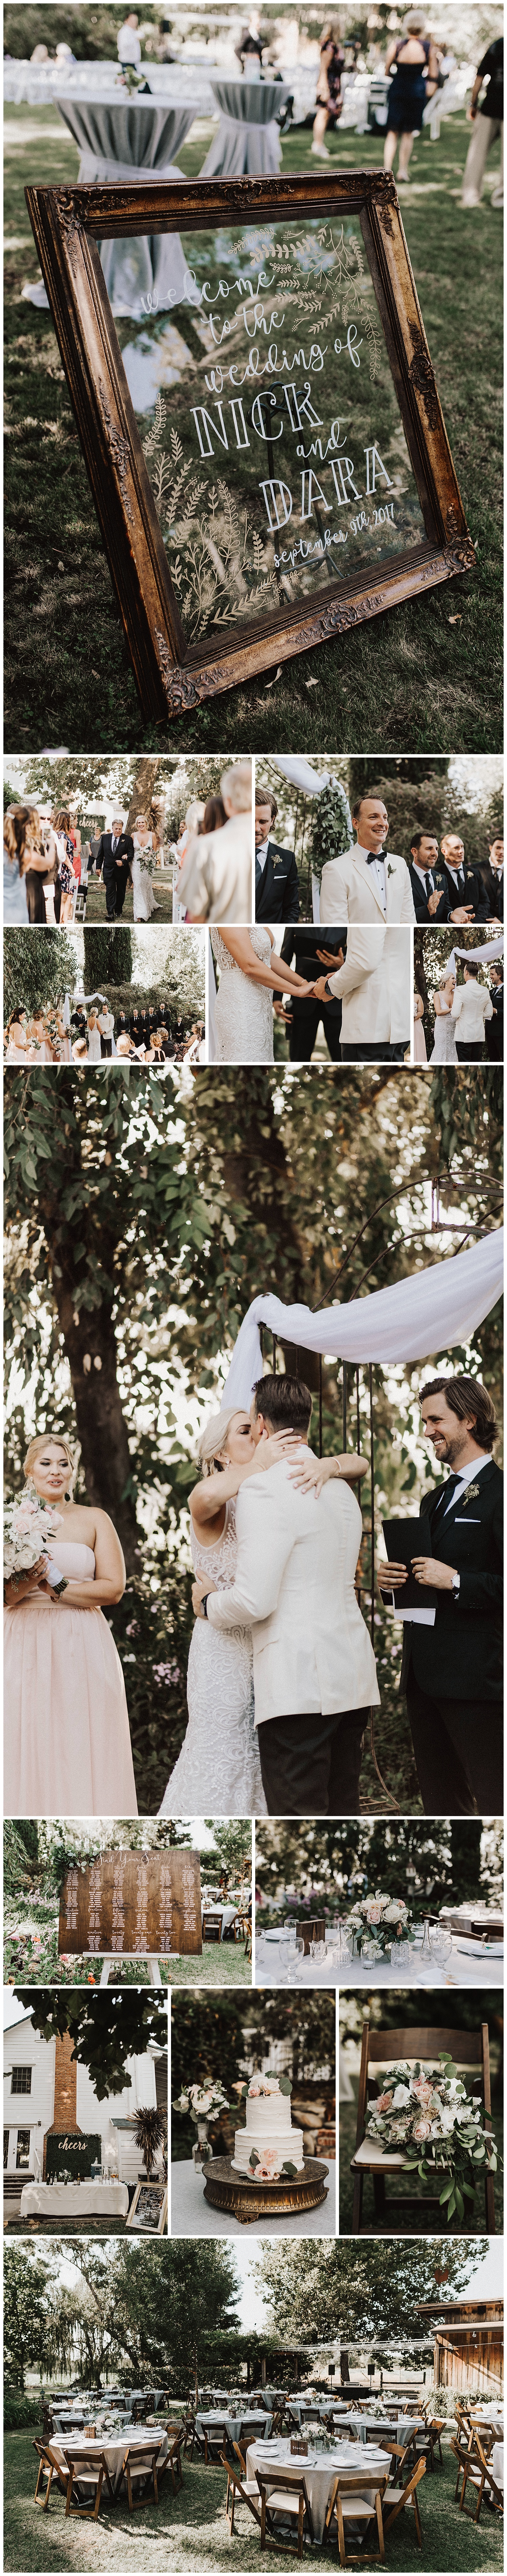 TJ-Farms-Wedding-Ceremony_the-530-bride